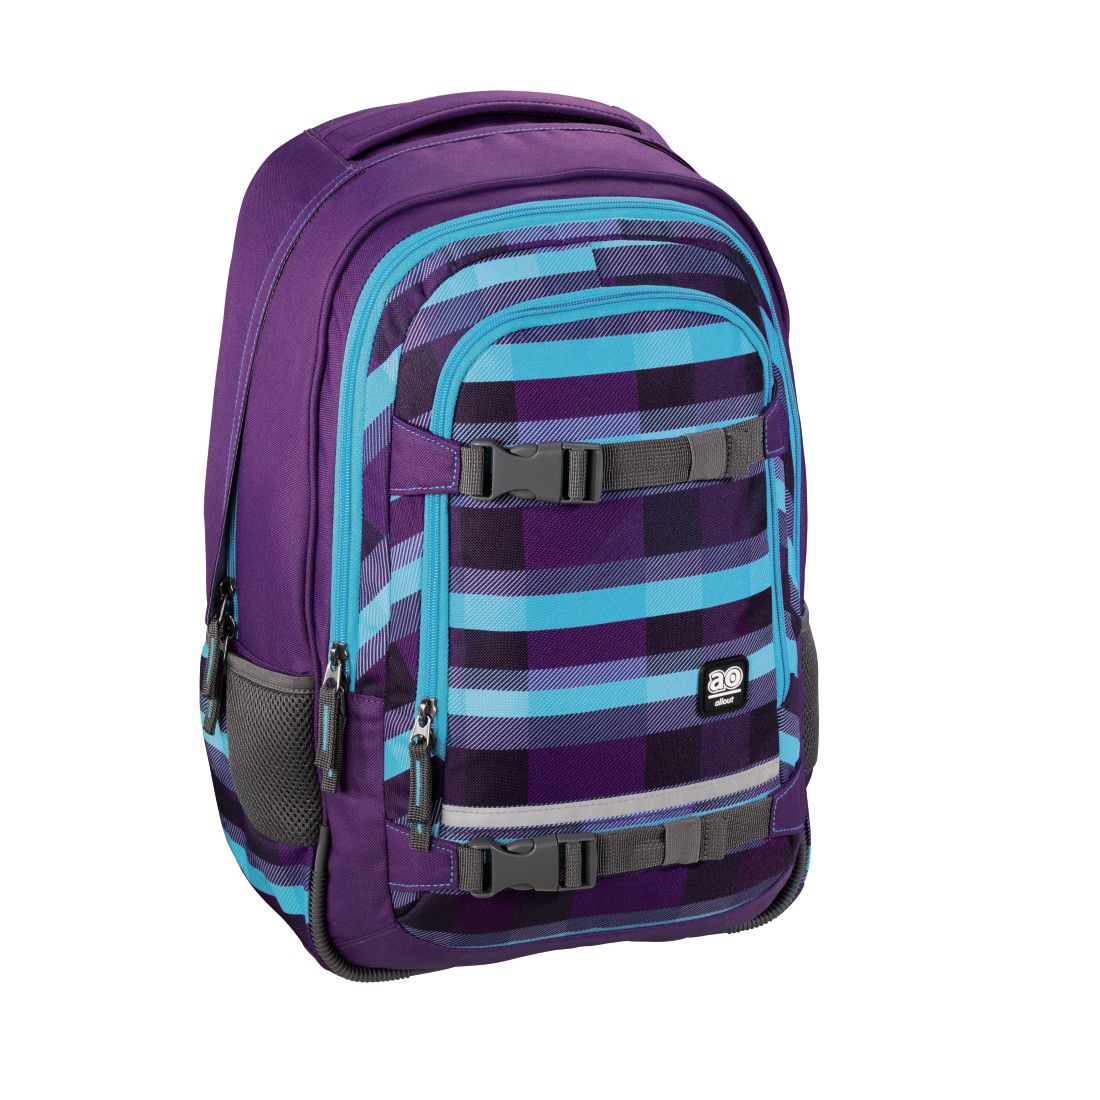 ALL OUT All Out Rucksack Selby, Summer Check Purple